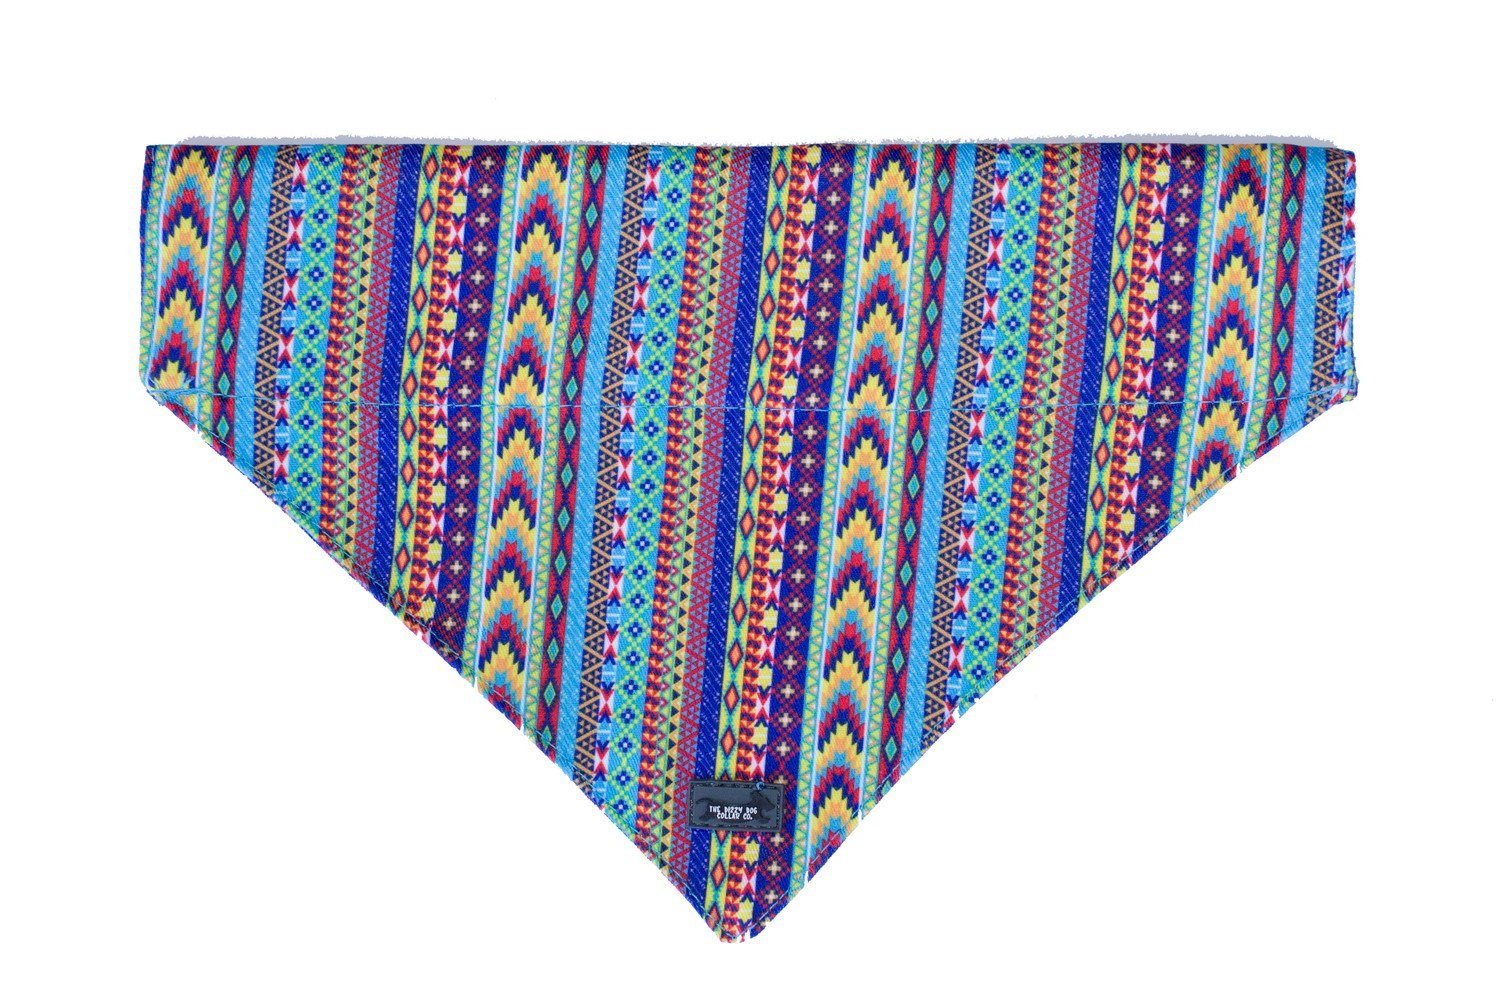 Summer Aztec Dog Bandana - Slip on / Over the collar bandana-Dizzy Dog Collars-Dizzy Dog Collars